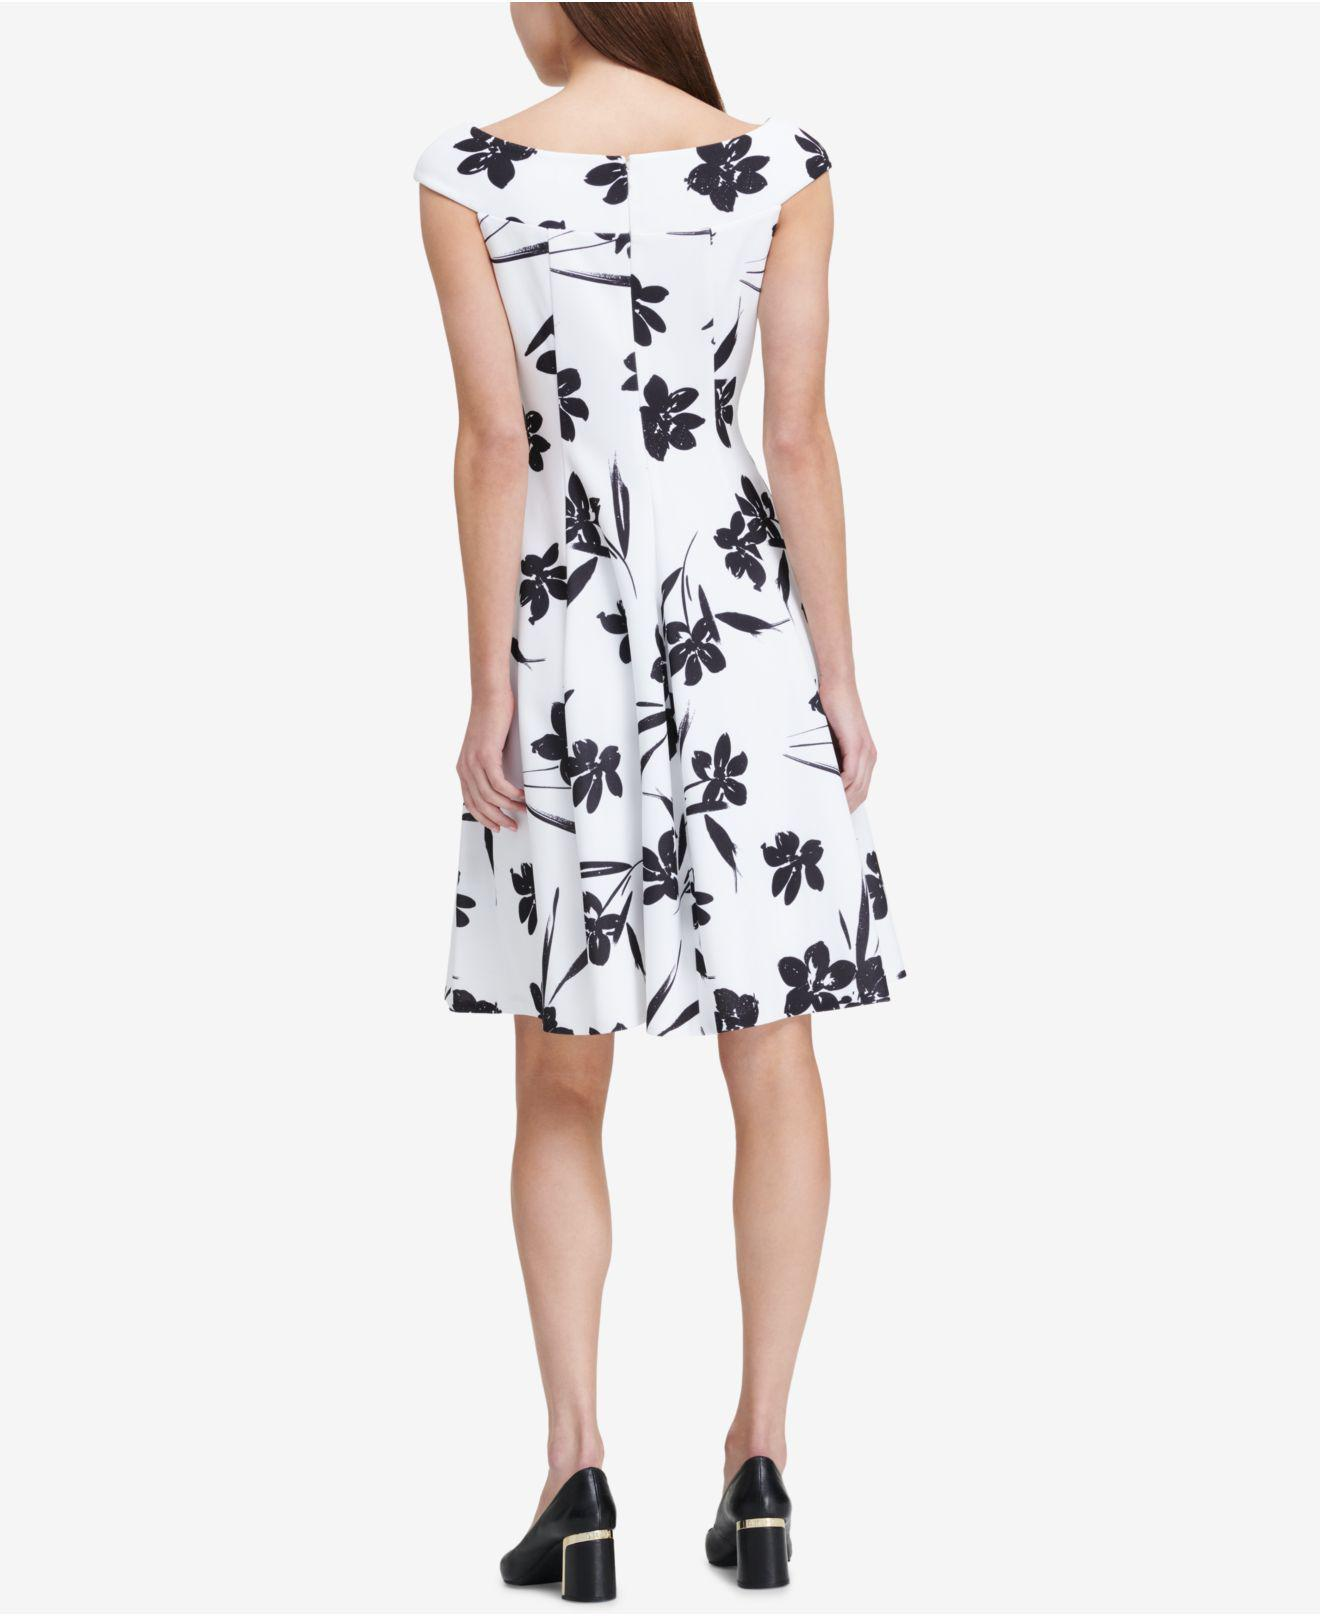 8b3ca551c97 Lyst - DKNY Printed Off-the-shoulder Fit   Flare Dress